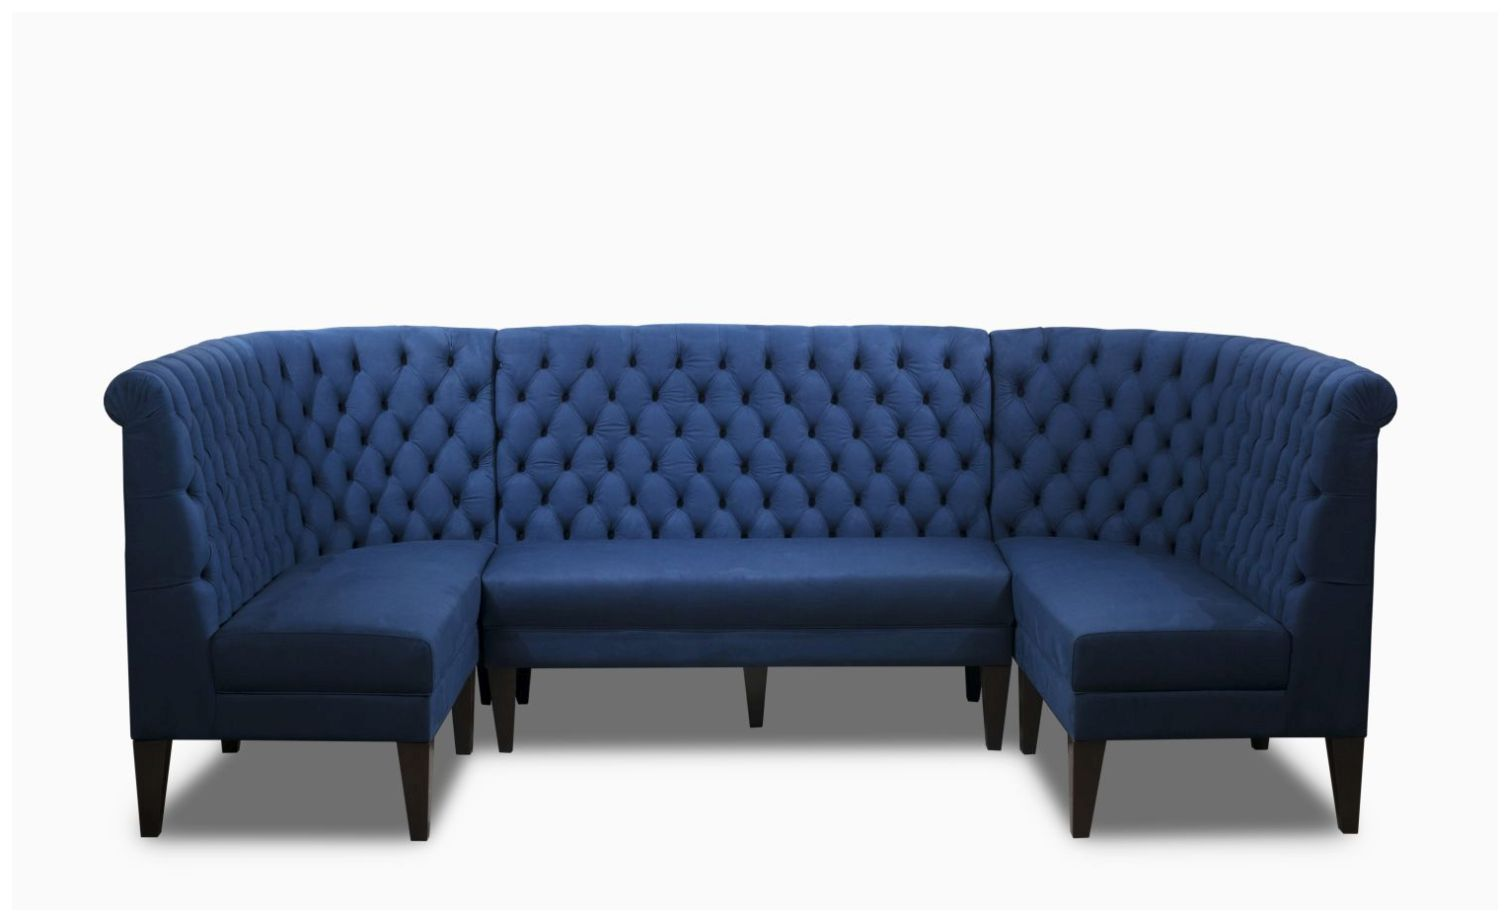 Custom Booth Seating with Button Tufting